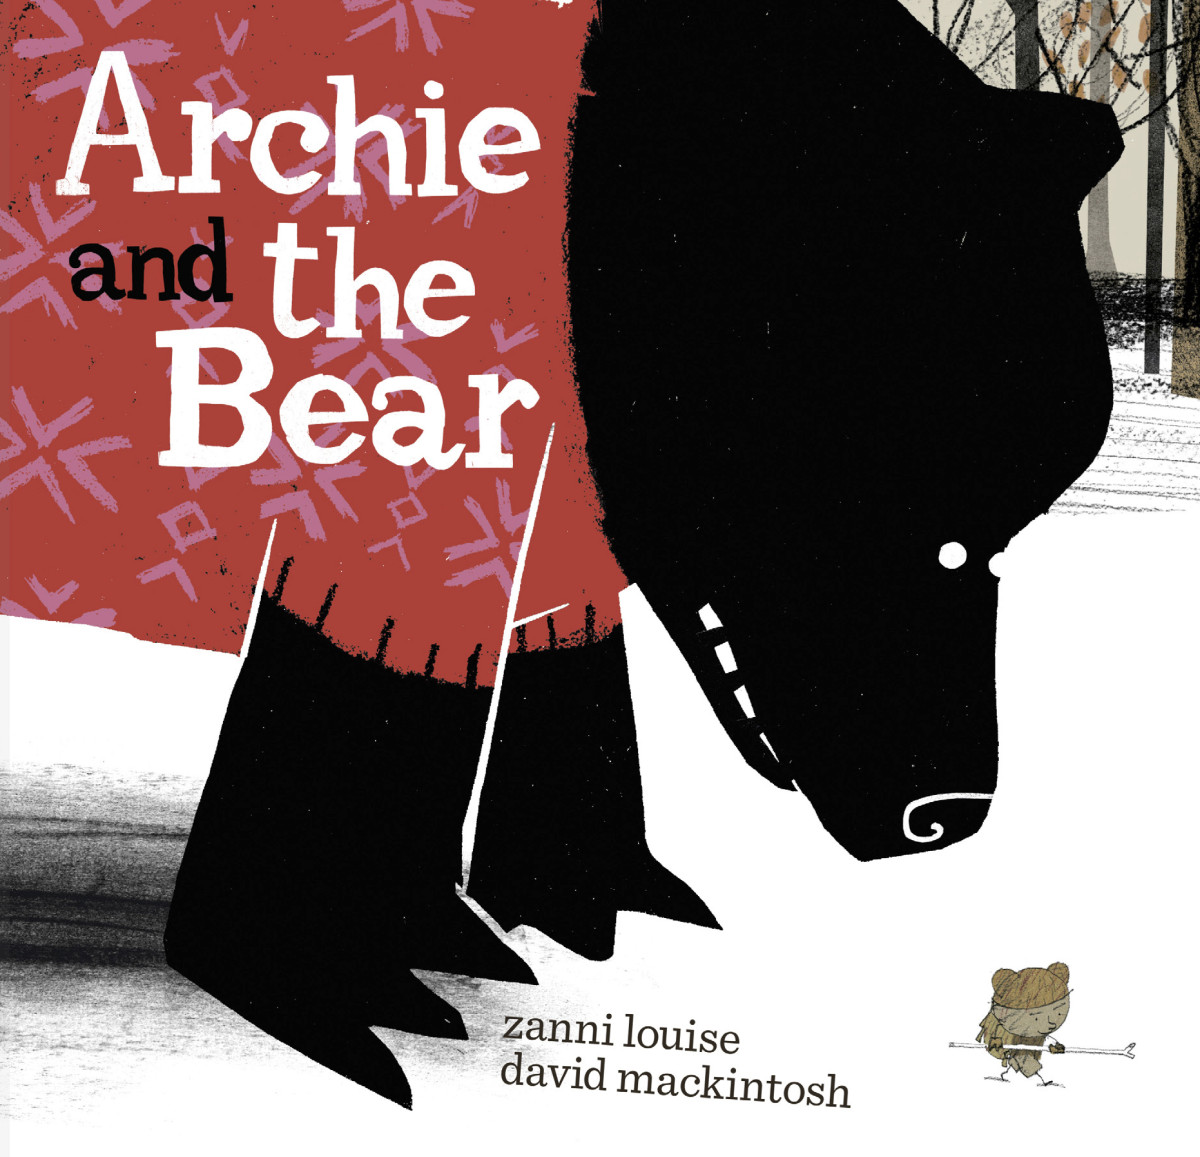 archie-and-the-bear-1200x1157.jpeg